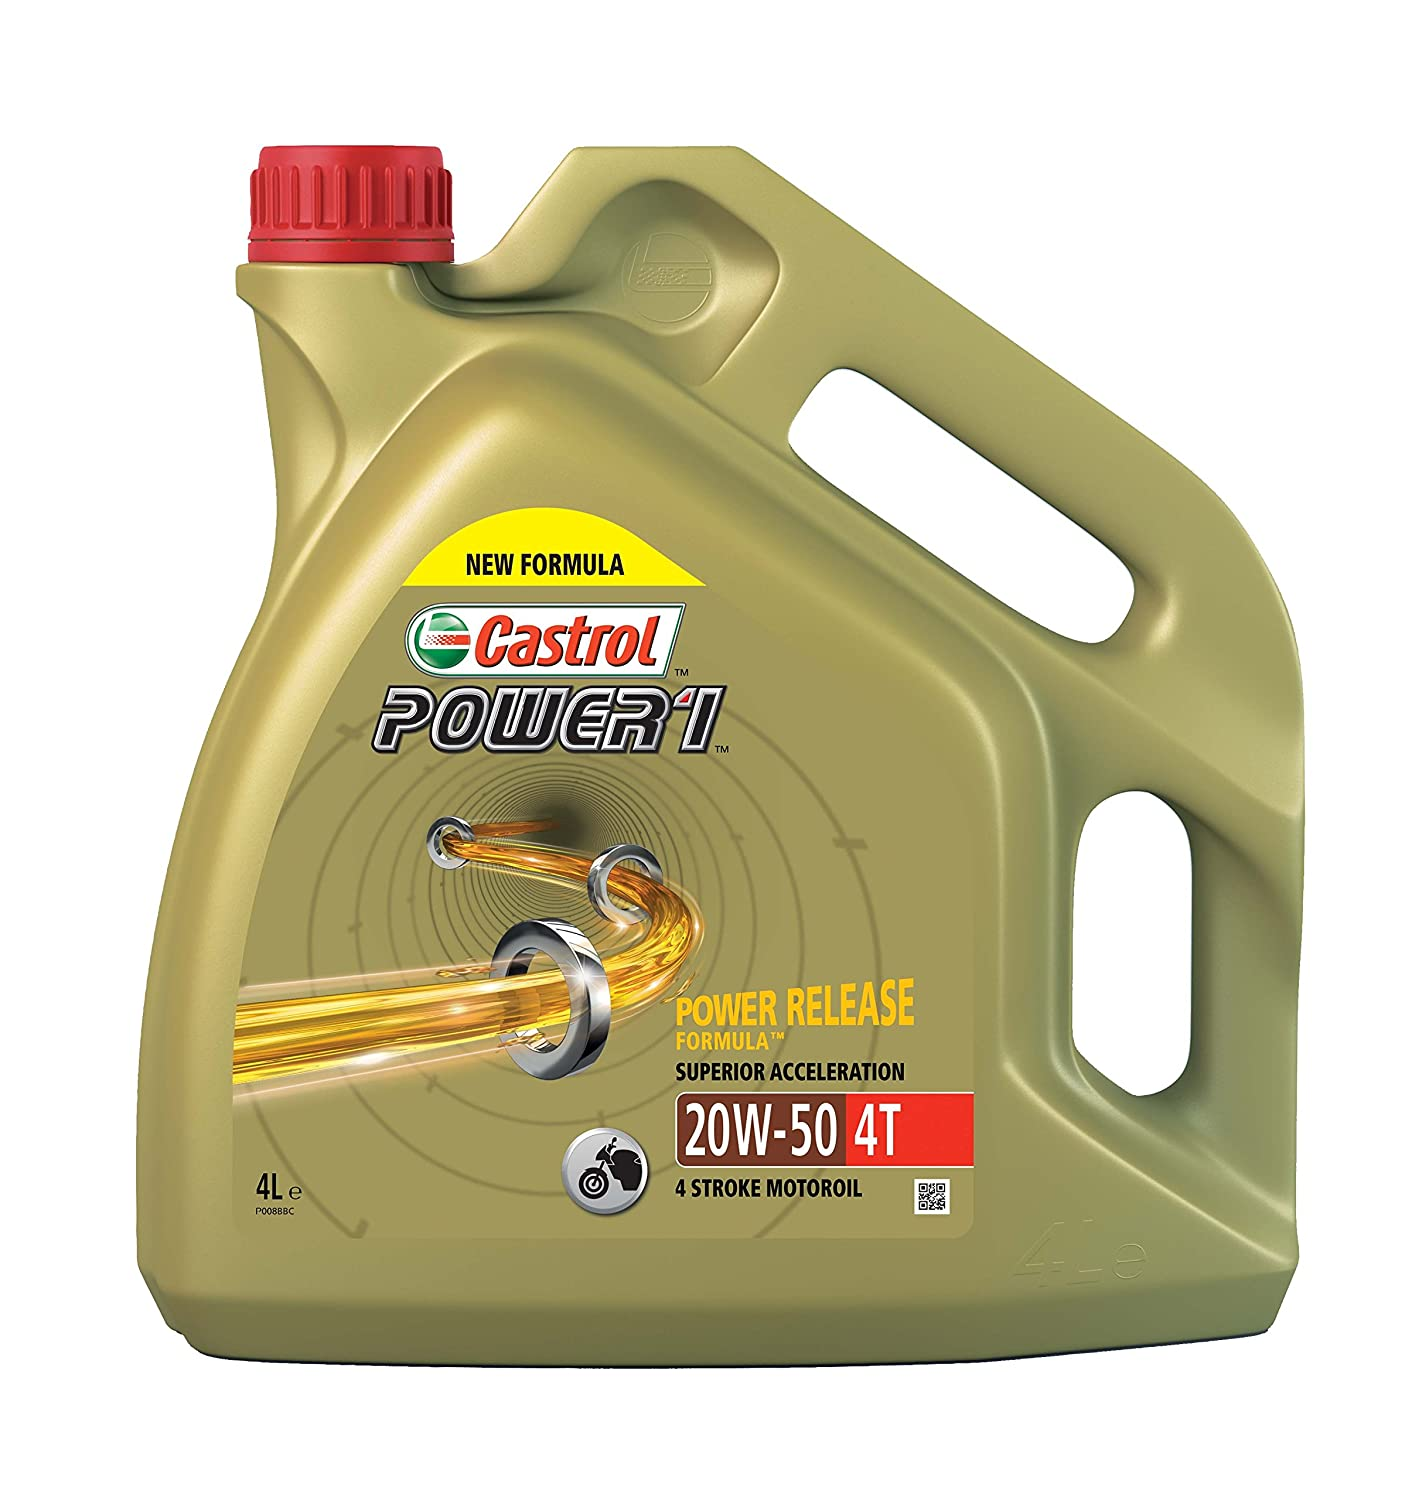 Castrol Synthetic Power 1 4T SAE 20W-50 Engine Oil, 4L Castrol Limited 15049B